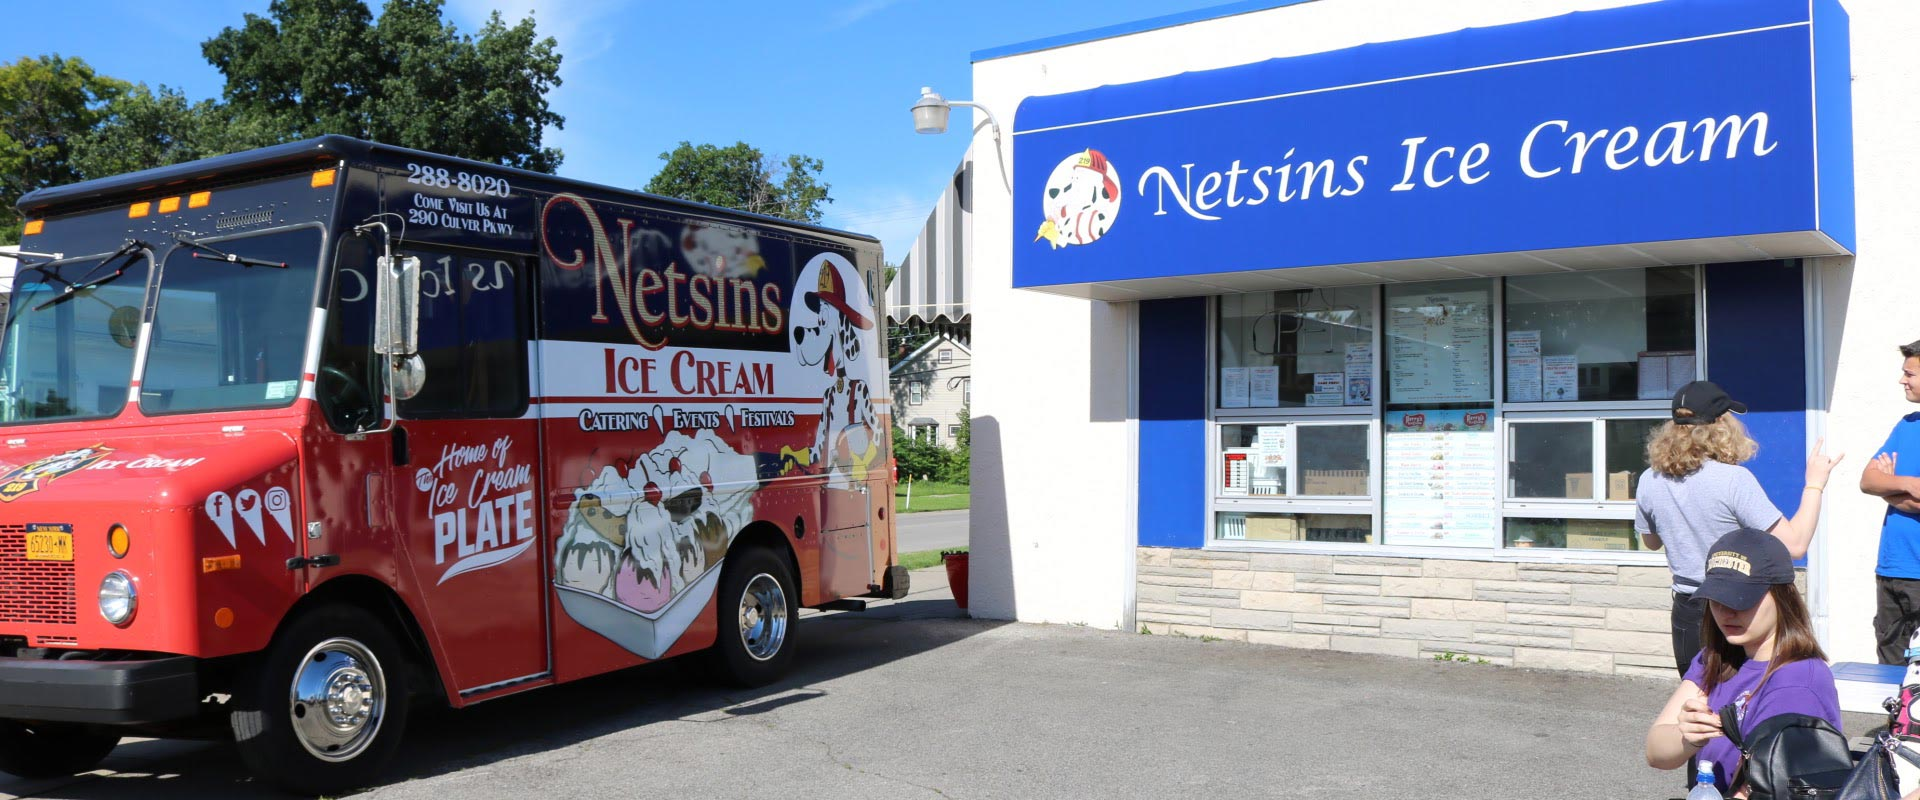 Netsins Ice Cream truck and store